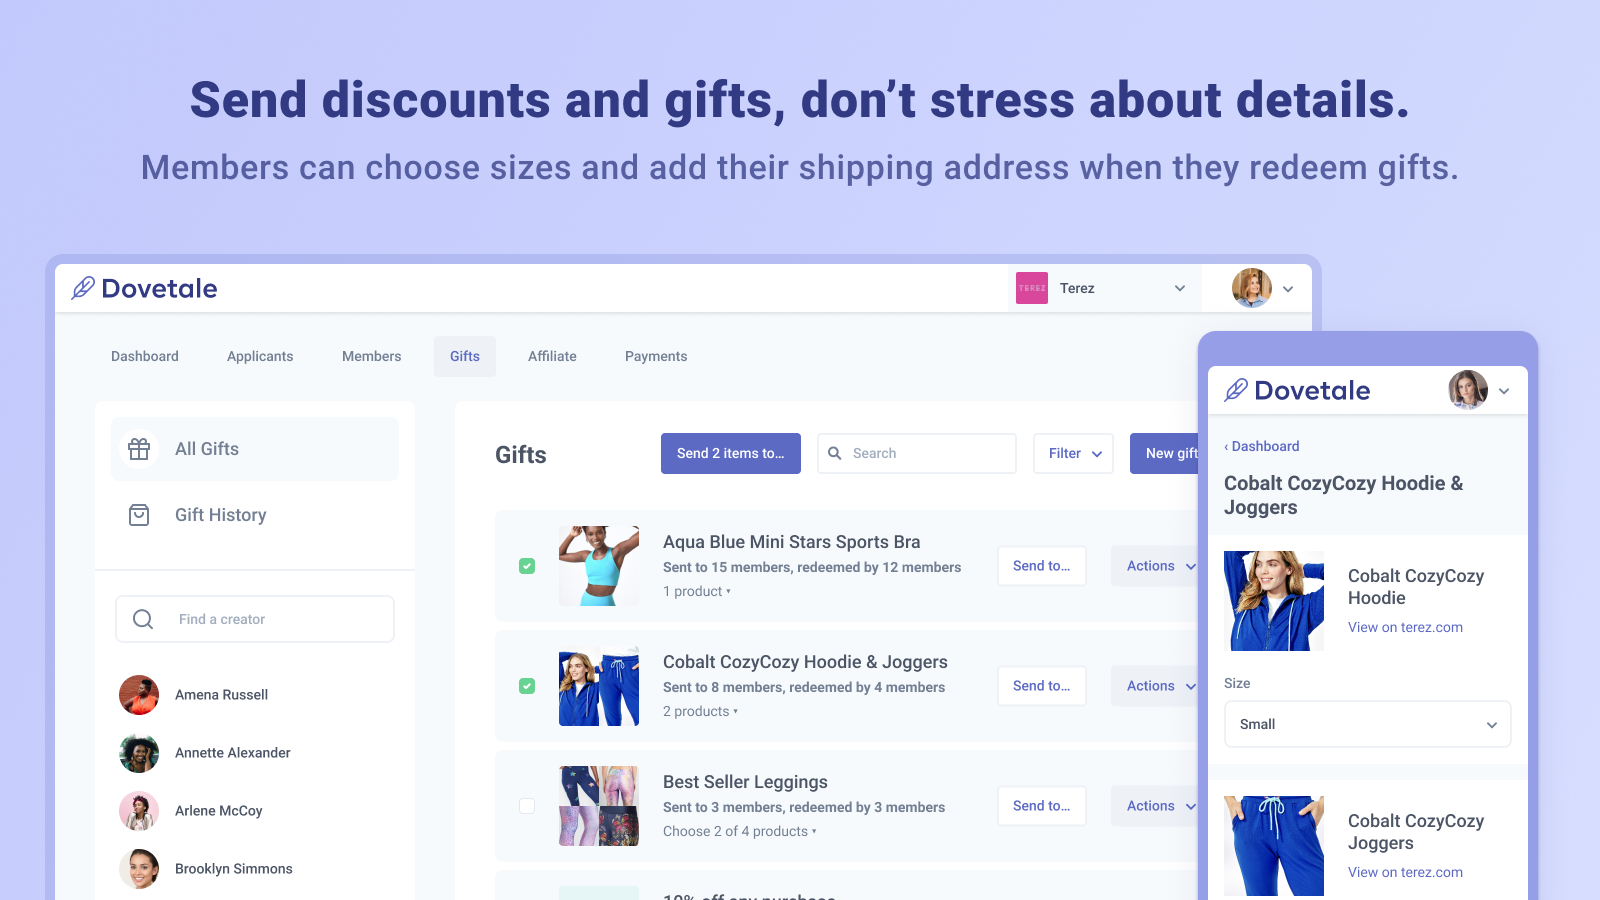 Send gifts, samples and discounts to your community members